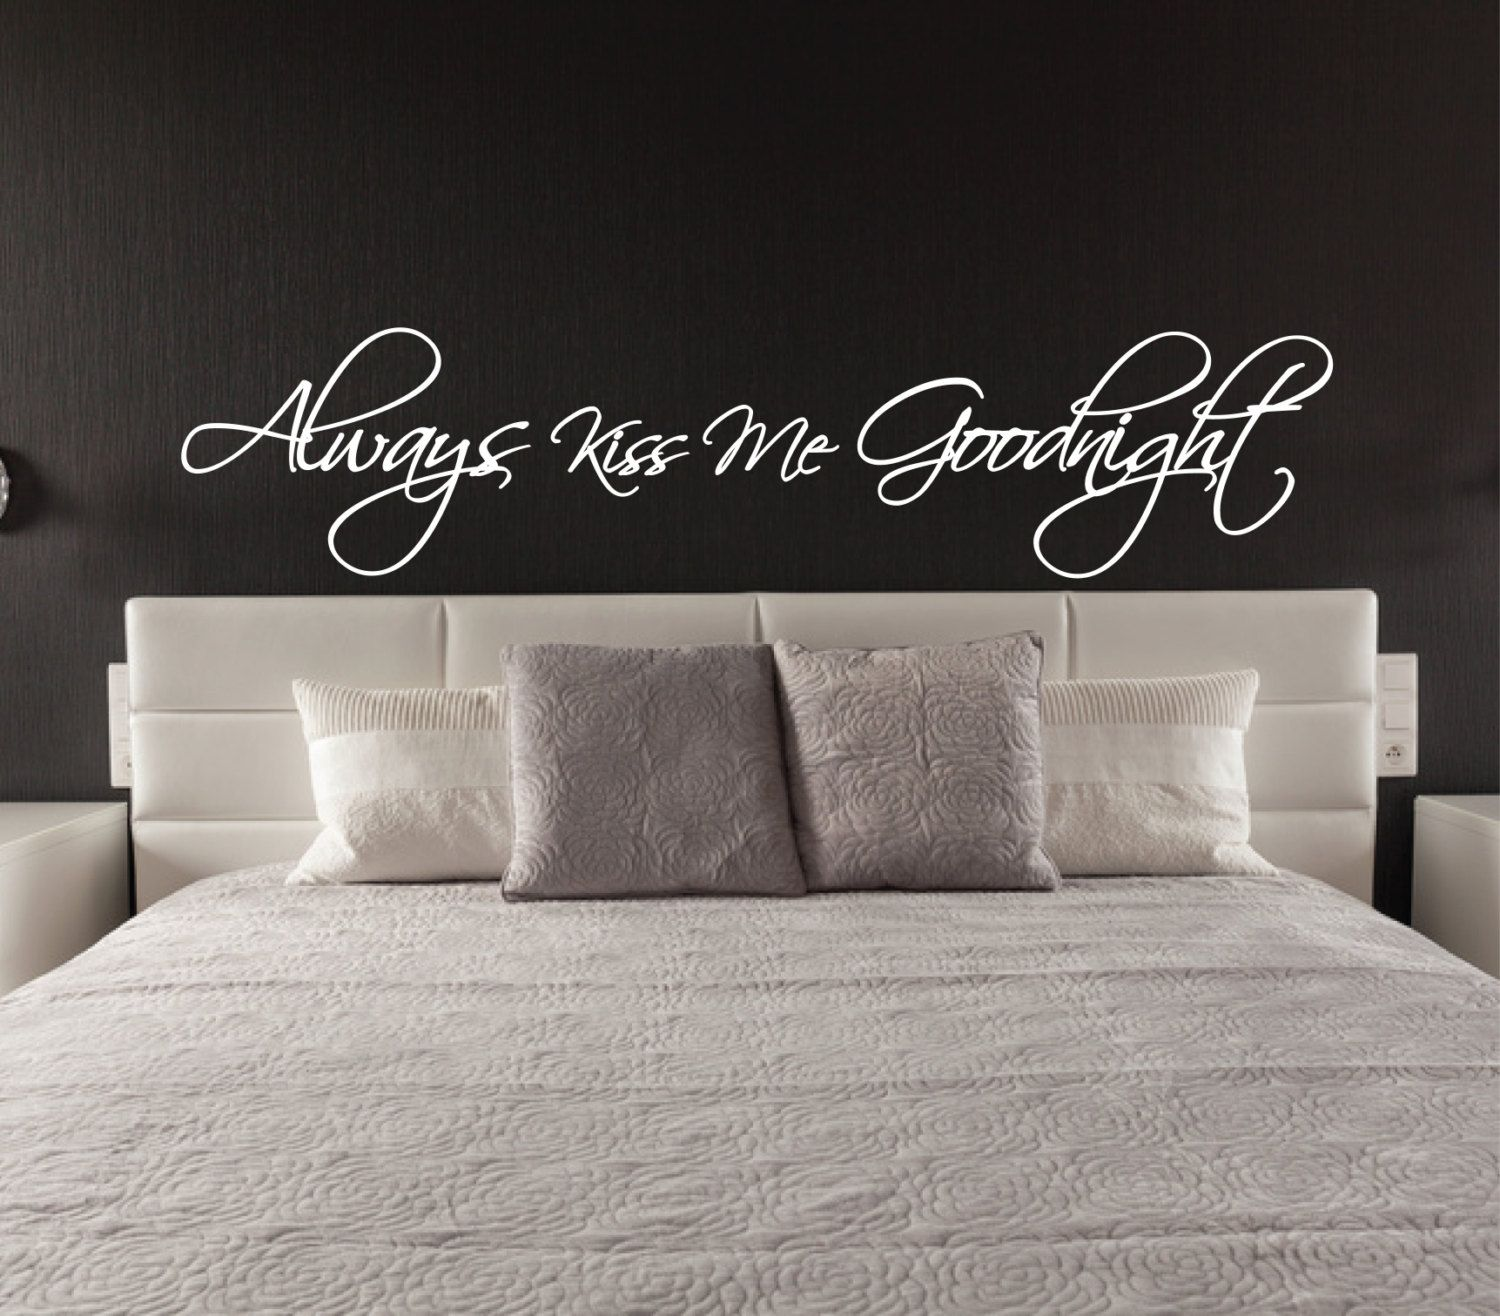 Above Bed Wall Sticker Always Kiss Me Goodnight L Over Bed Decor